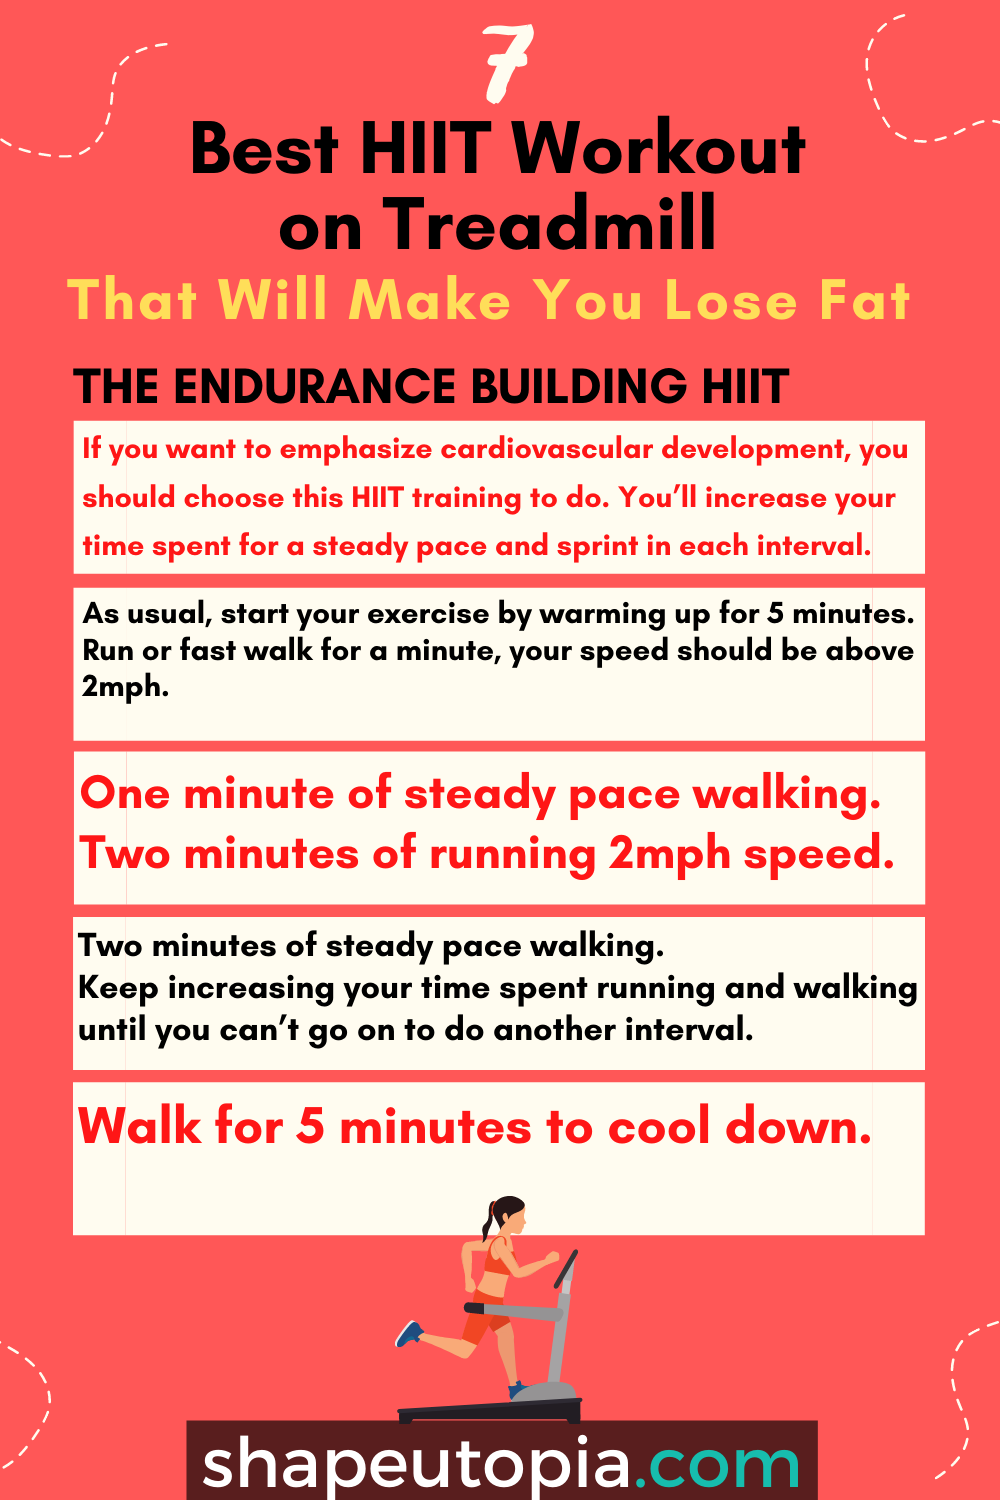 endurance 7 Best HIIT Workout on Treadmill That Will Make You Lose Fat